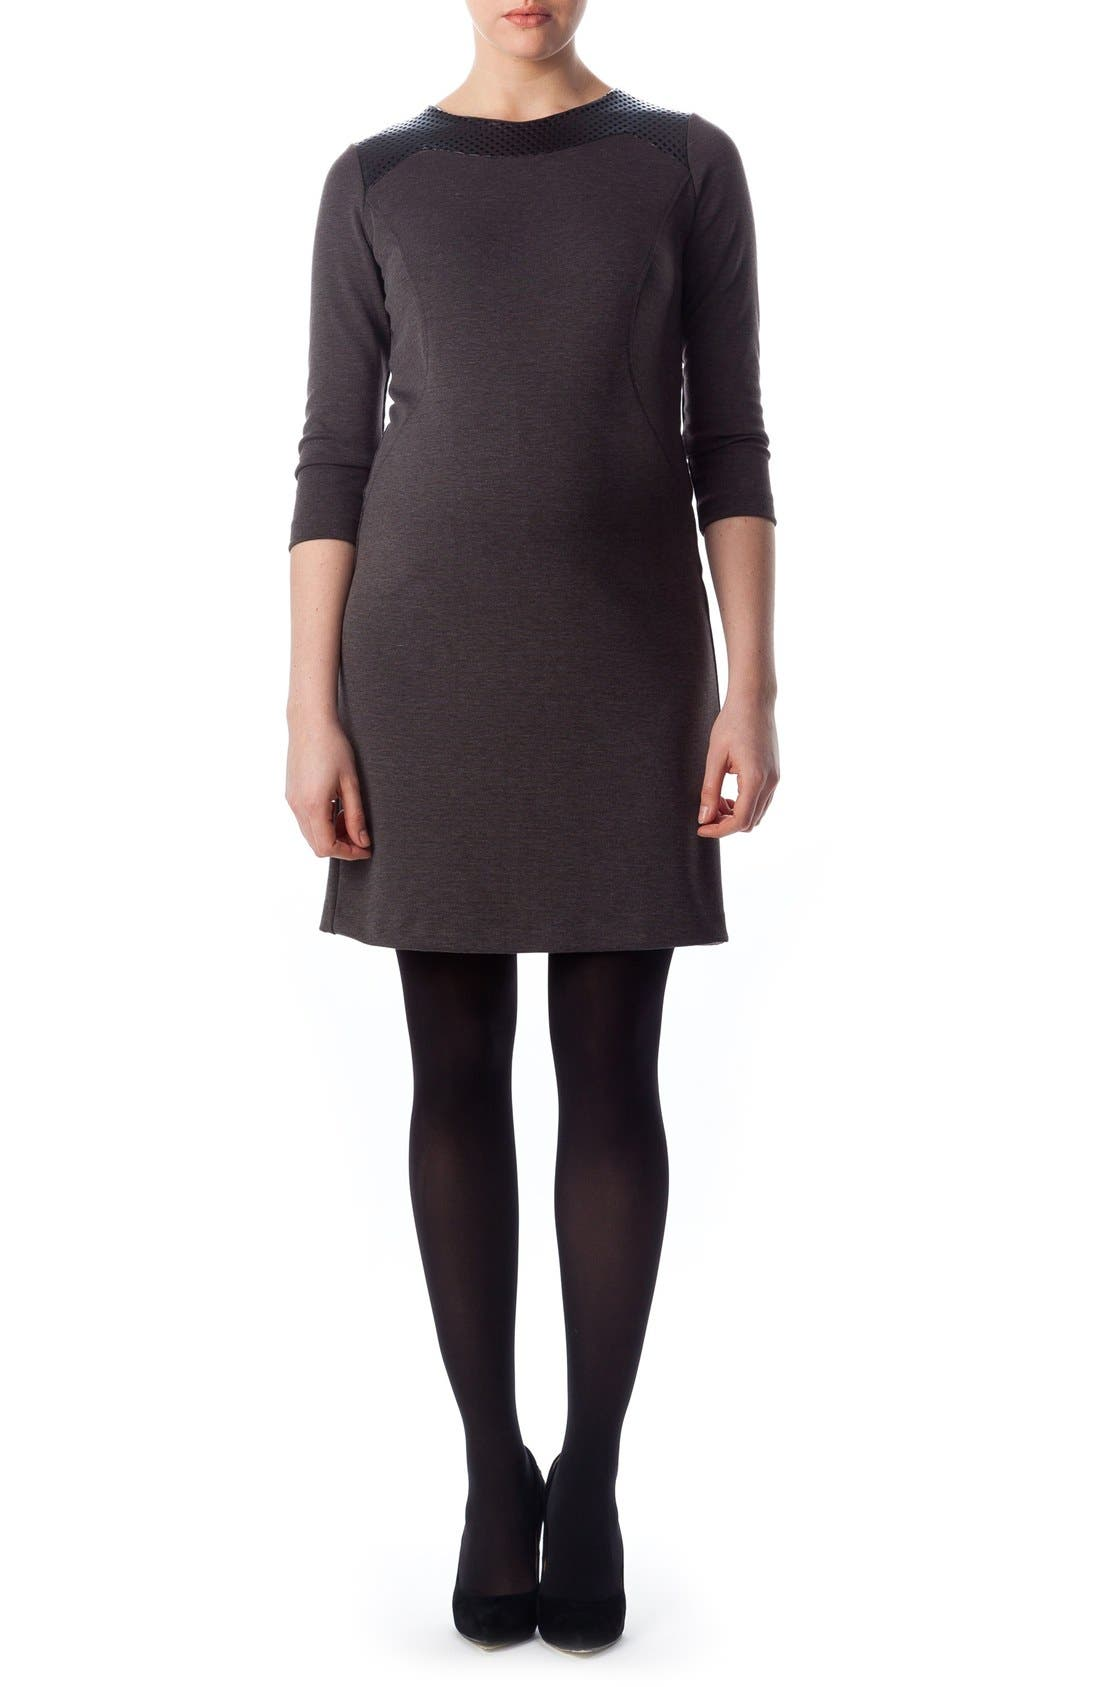 PIETRO BRUNELLI Milano Ponte Dress